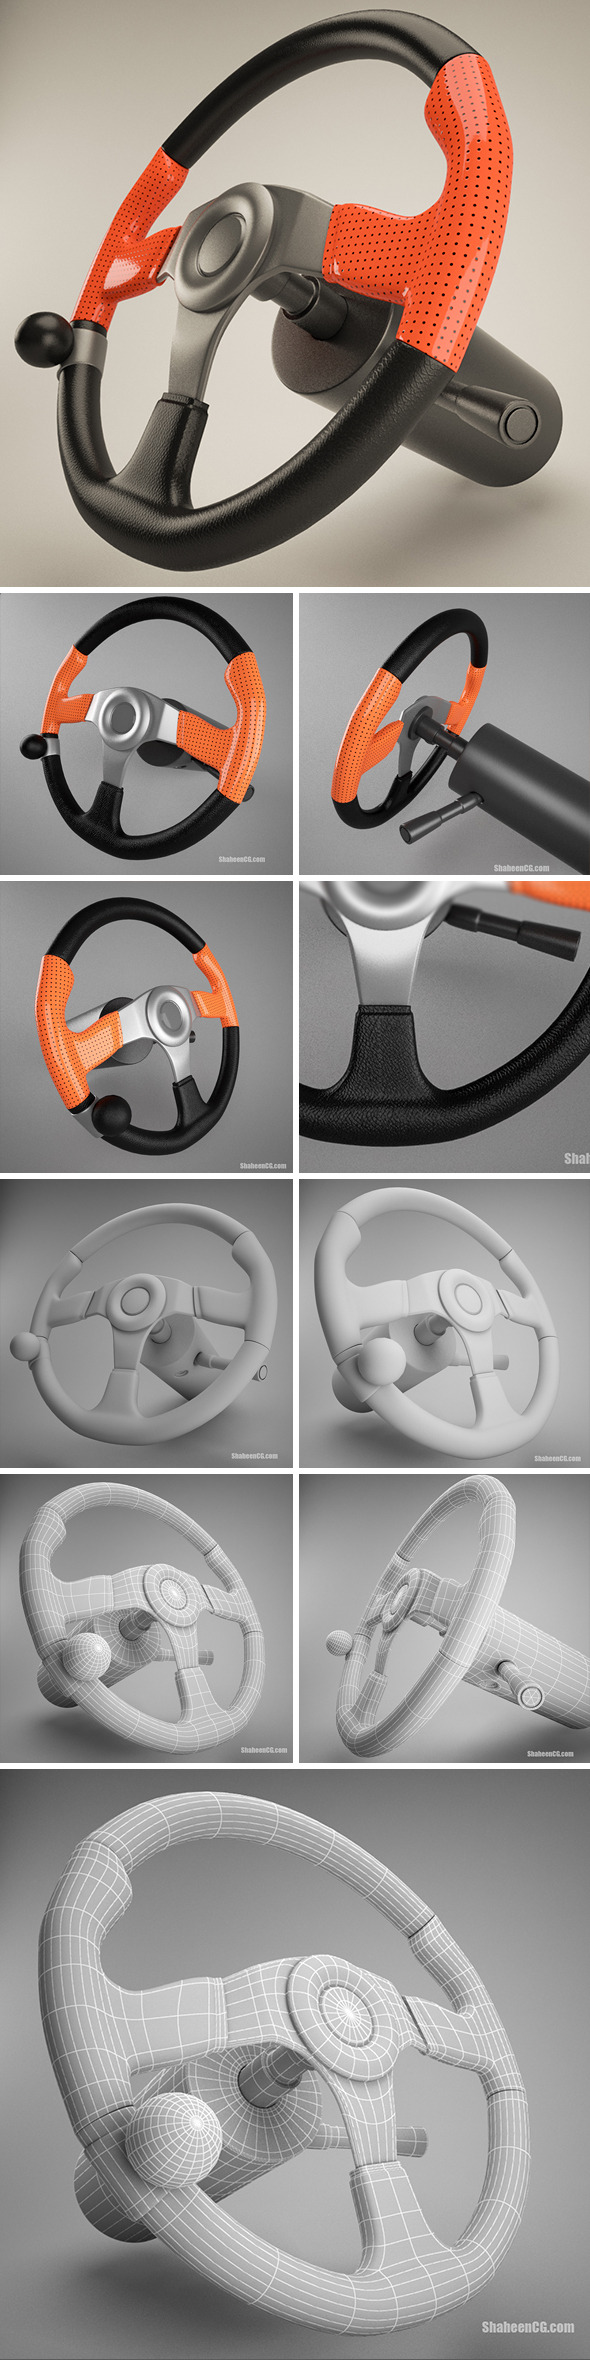 Steering Wheel - 3DOcean Item for Sale